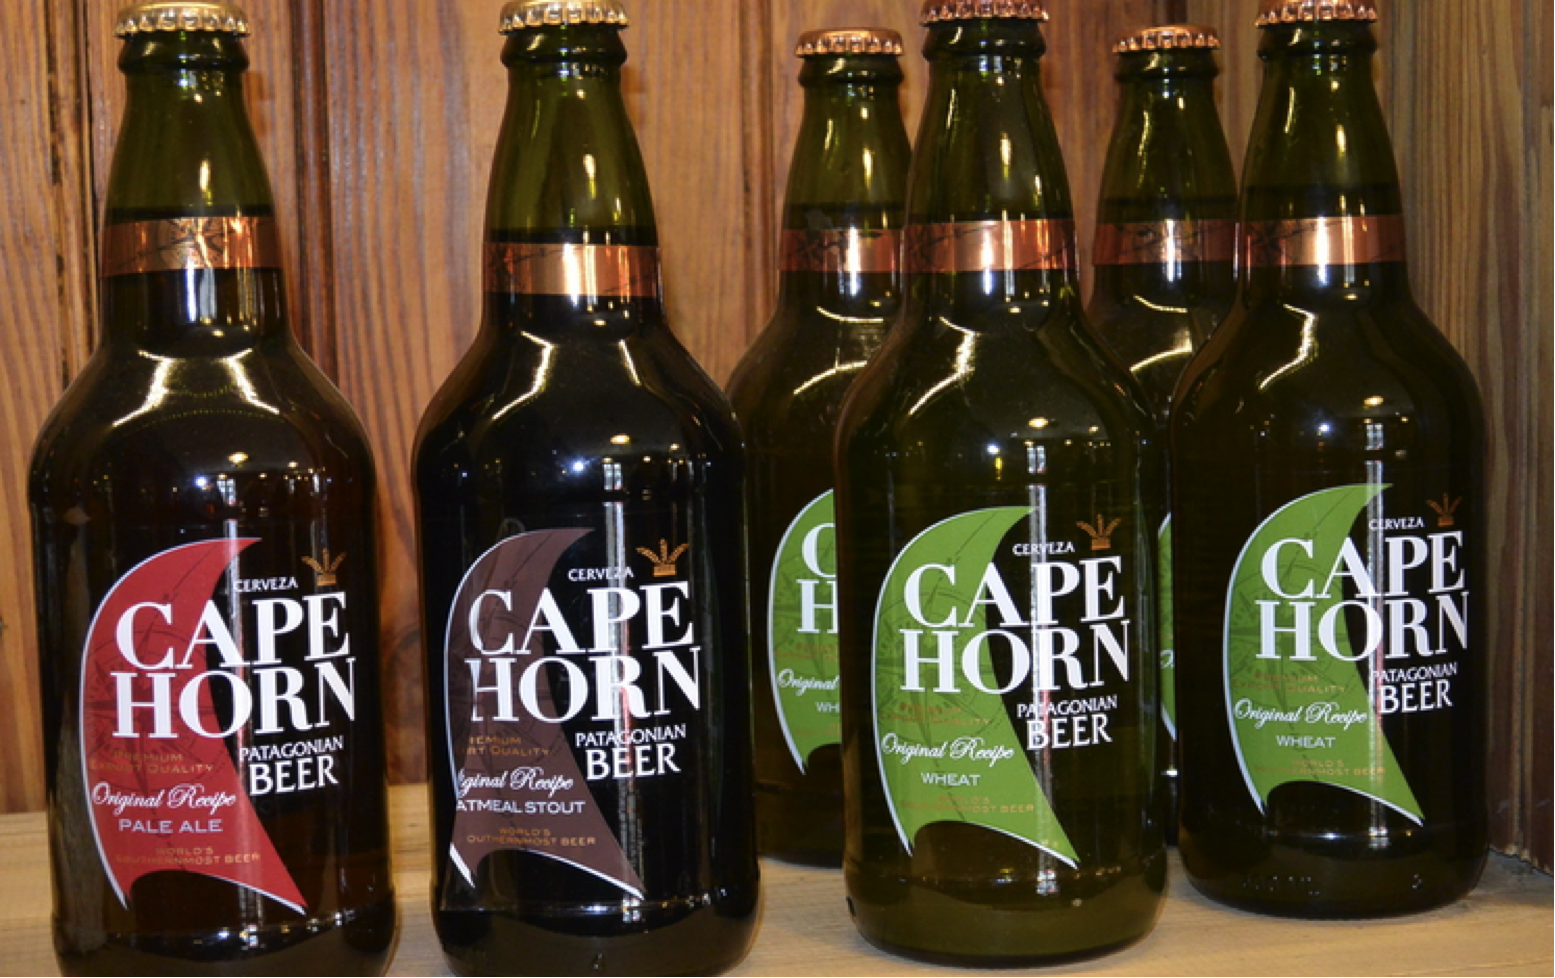 cape horn beer